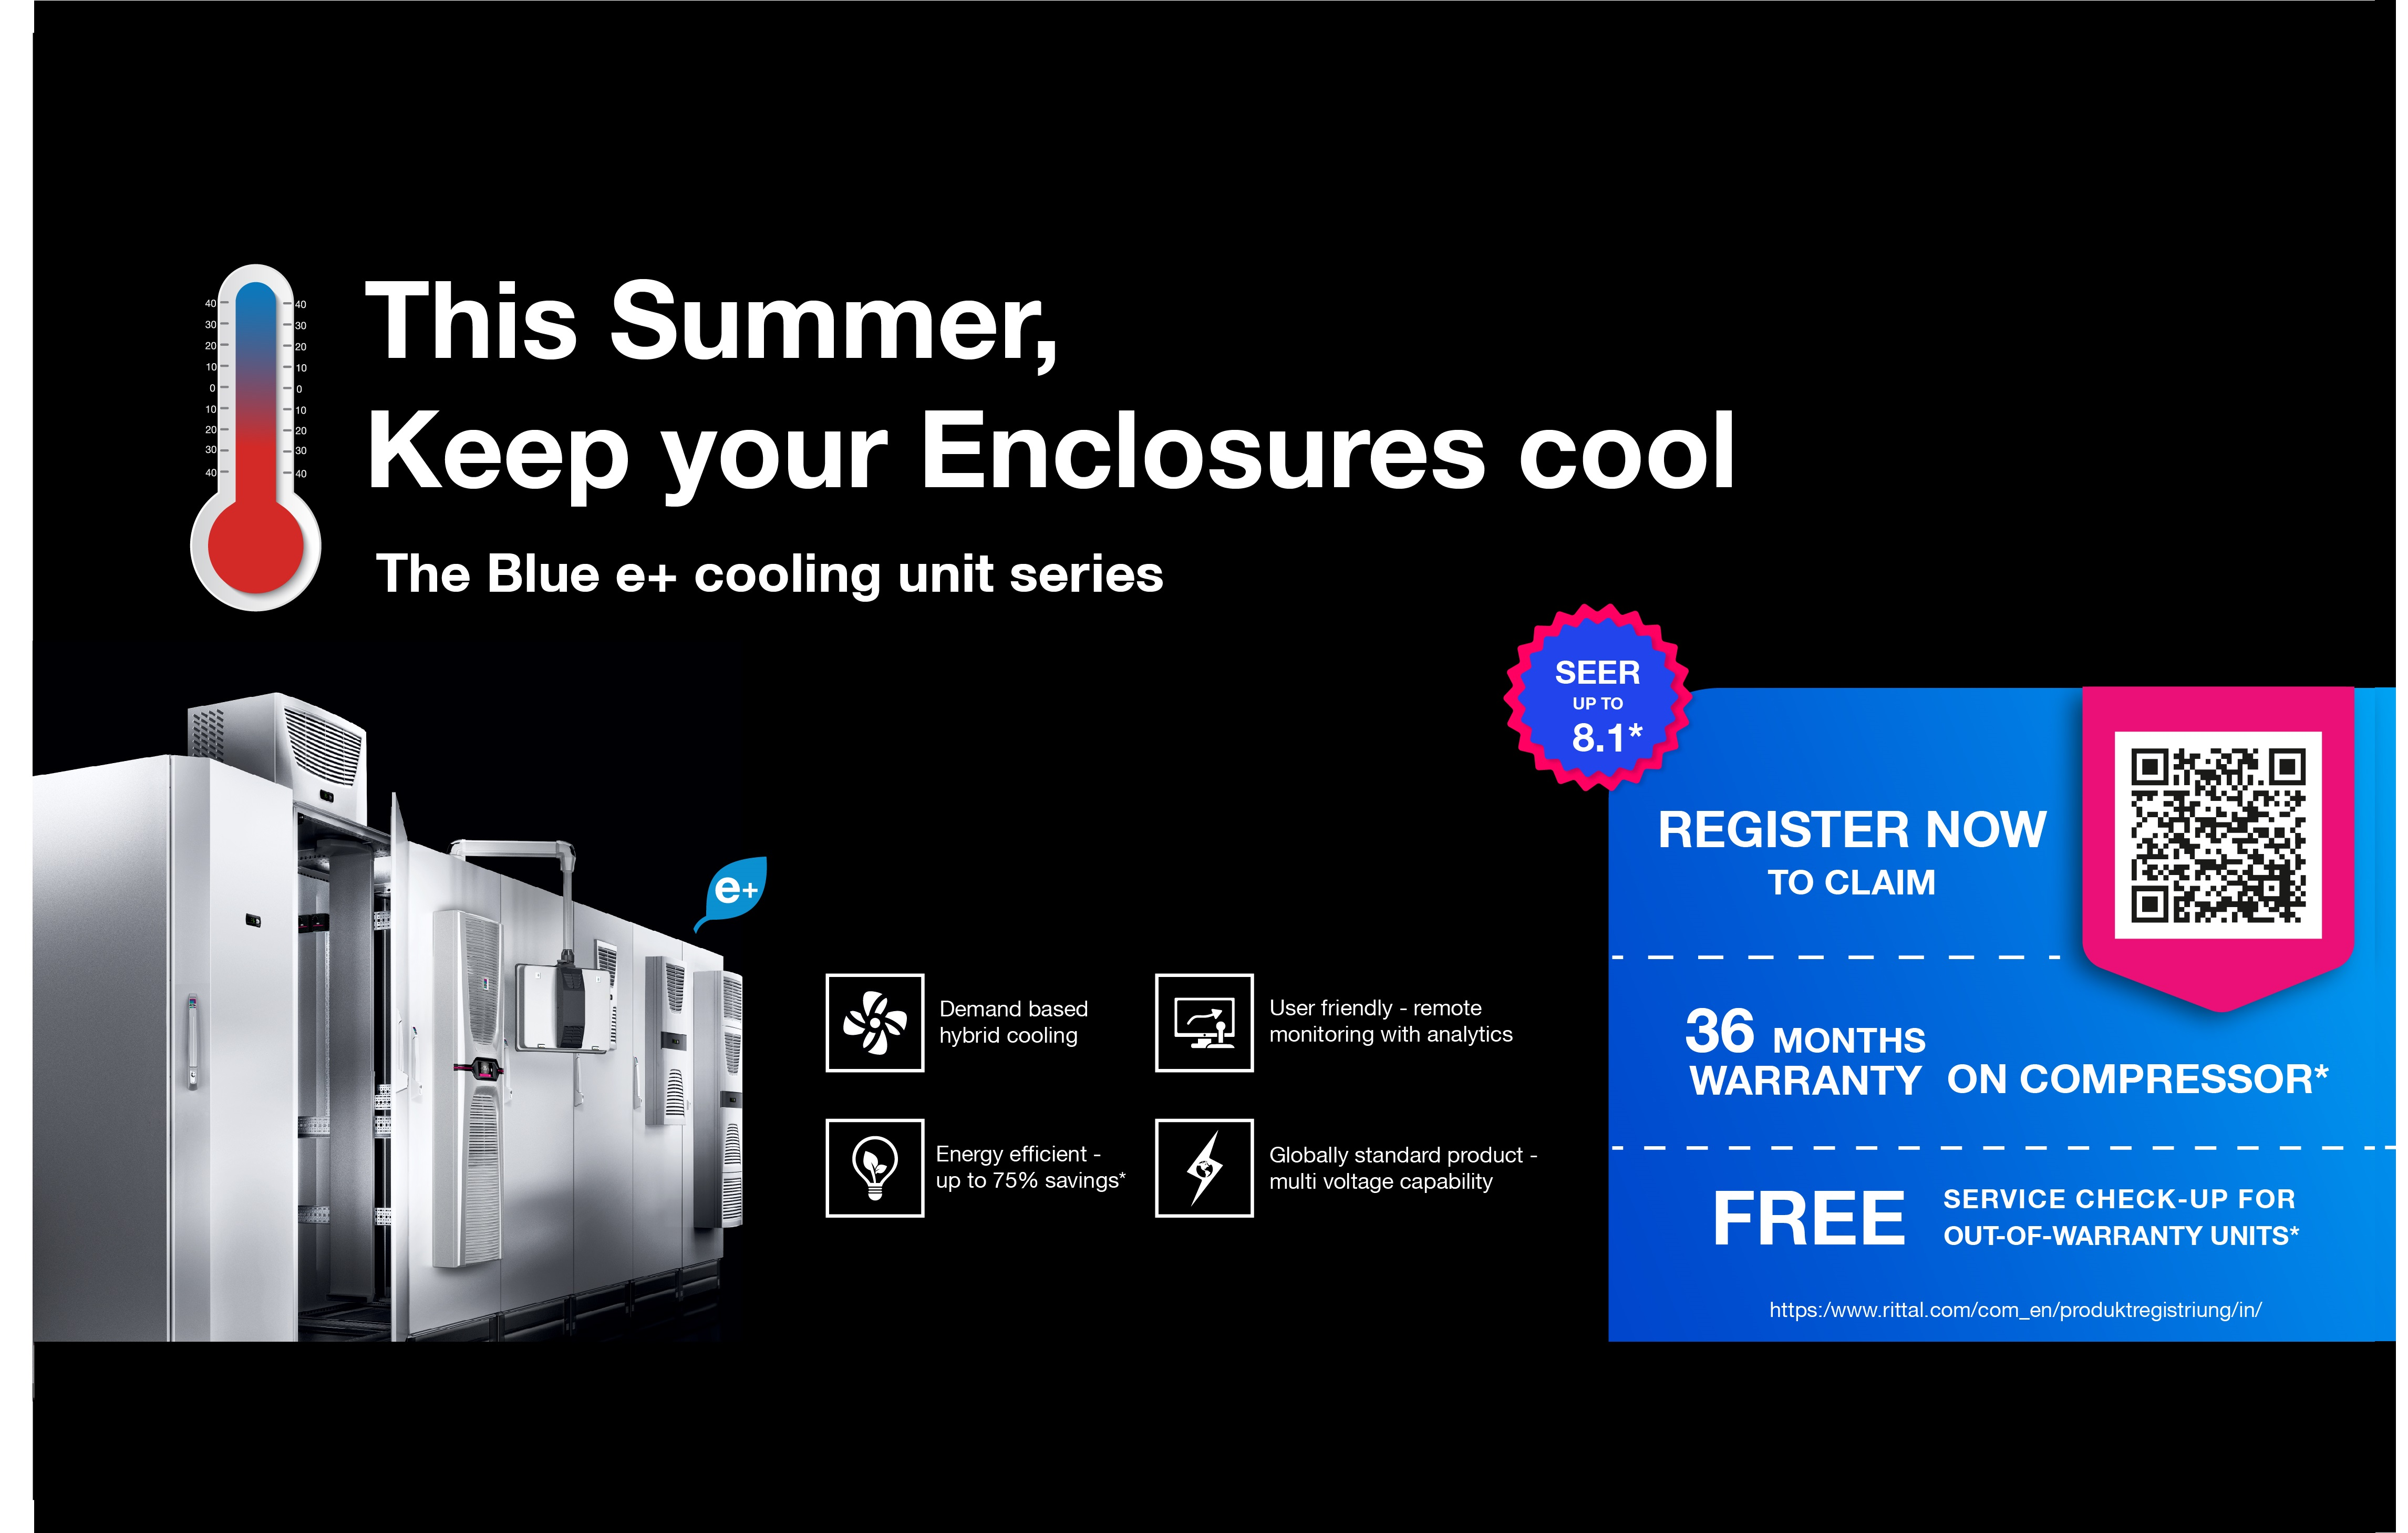 World´s first. The Blue e+ cooling unit series.